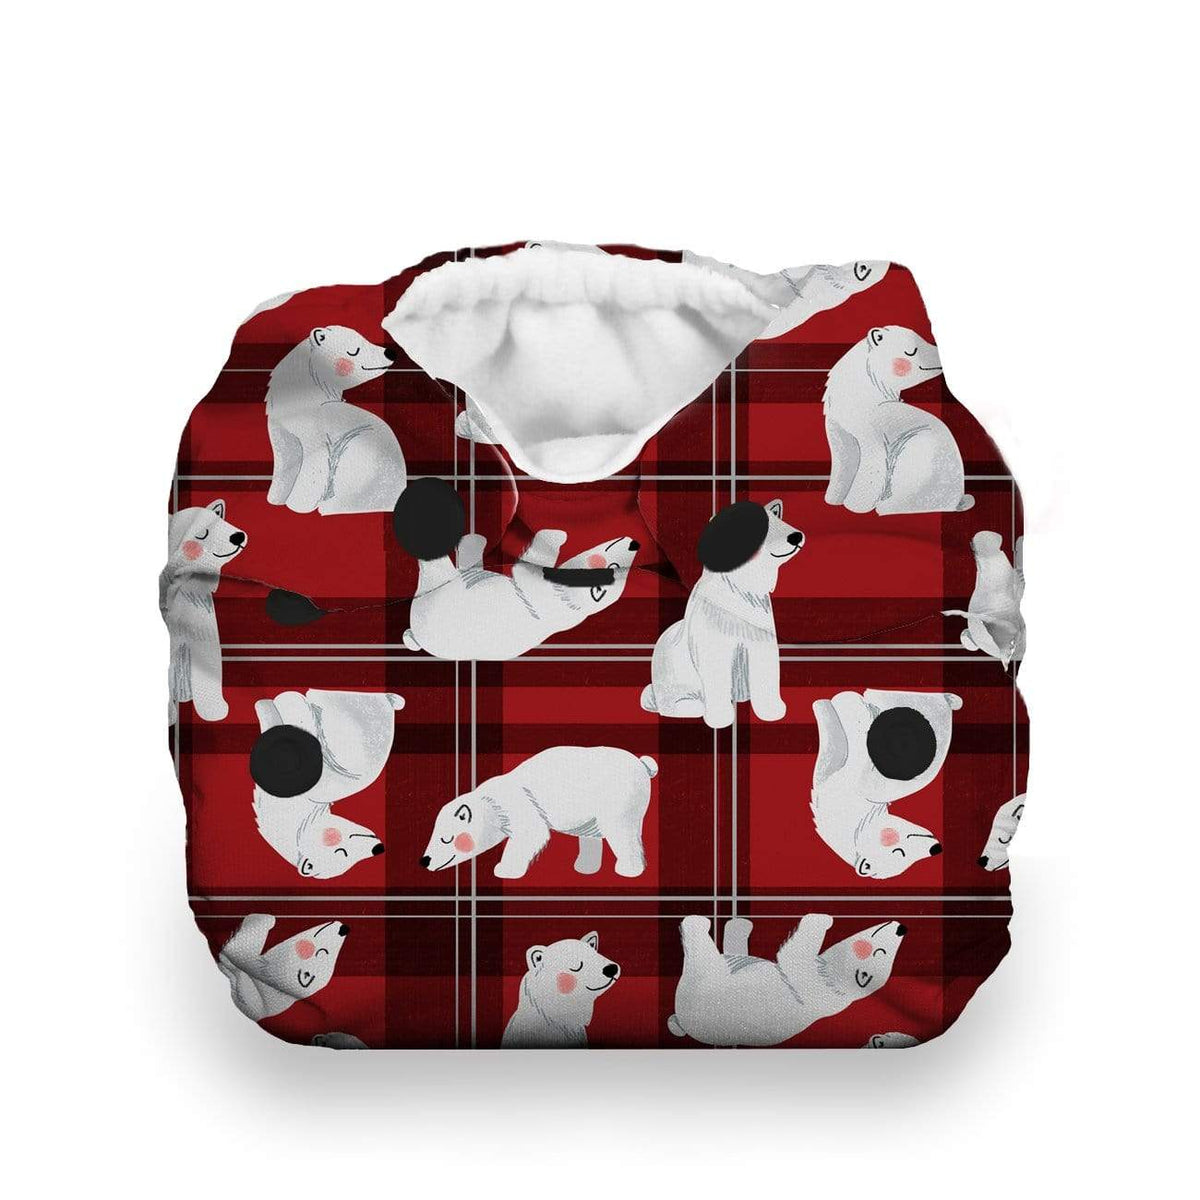 Thirsties Newborn Snap All In One Diaper - Polar Plaid